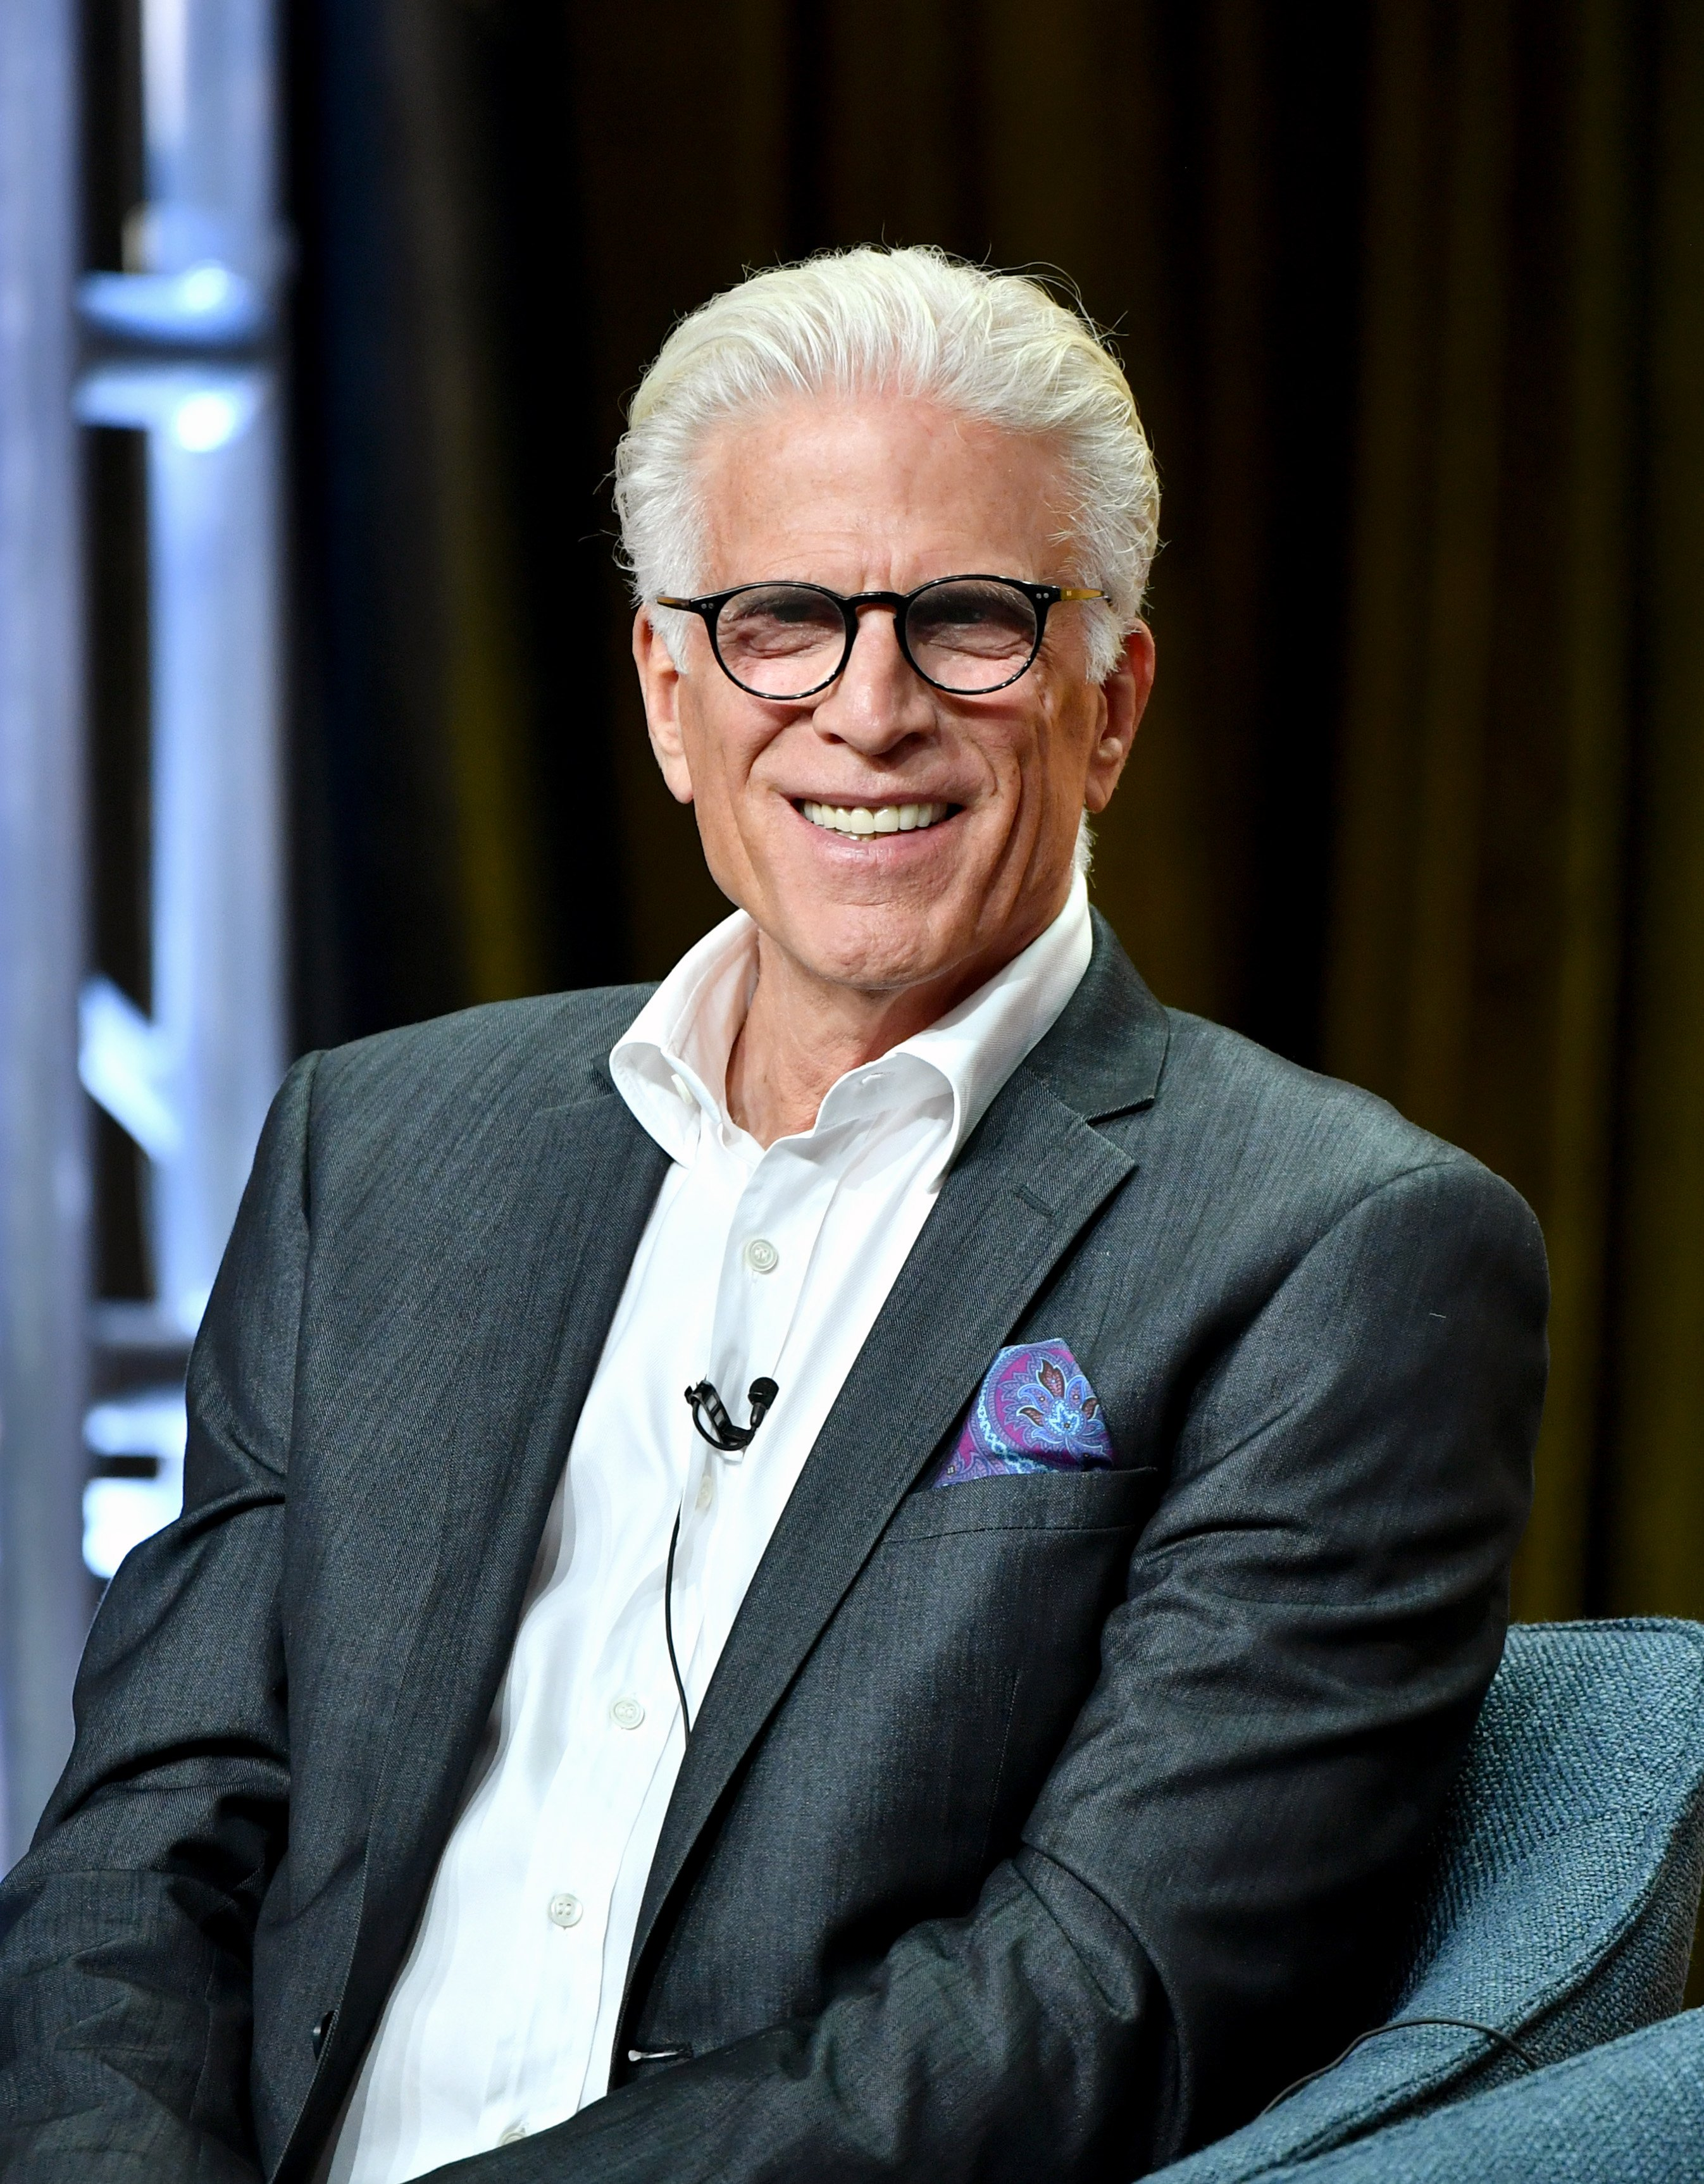 Ted Danson of 'The Good Place' speak during the NBC segment of the 2019 Summer TCA Press Tour at The Beverly Hilton Hotel on August 08, 2019 | Photo: GettyImages